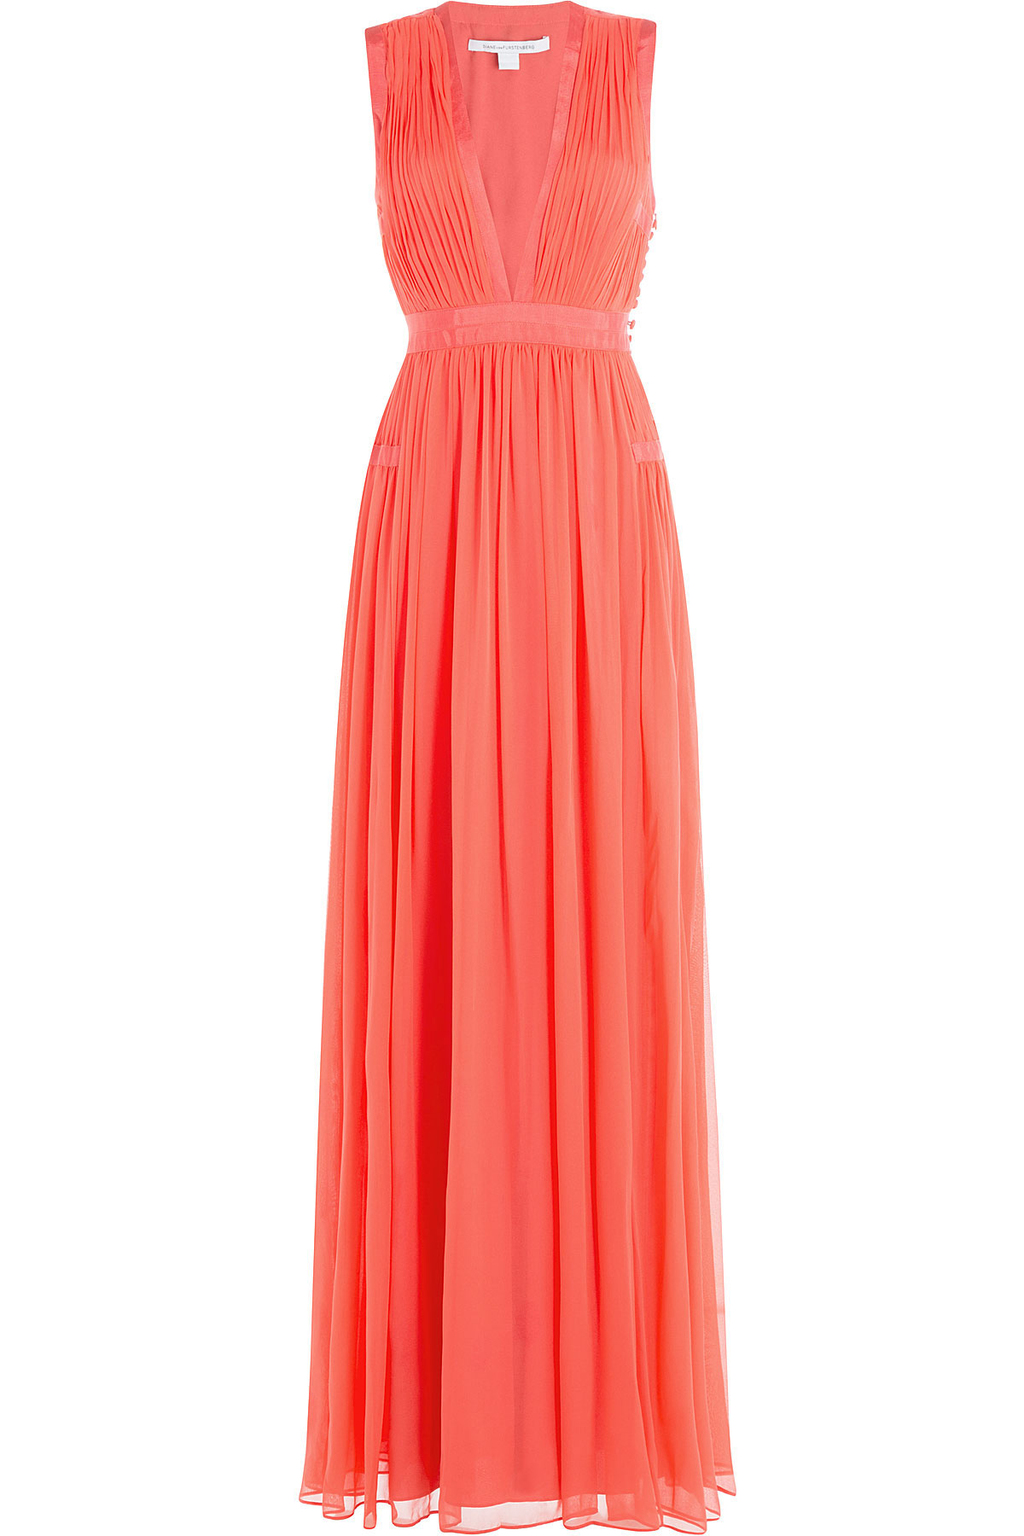 Gathered Silk Gown - neckline: low v-neck; pattern: plain; sleeve style: sleeveless; style: maxi dress; predominant colour: coral; occasions: evening; length: floor length; fit: body skimming; fibres: silk - 100%; sleeve length: sleeveless; texture group: silky - light; pattern type: fabric; season: s/s 2016; wardrobe: event